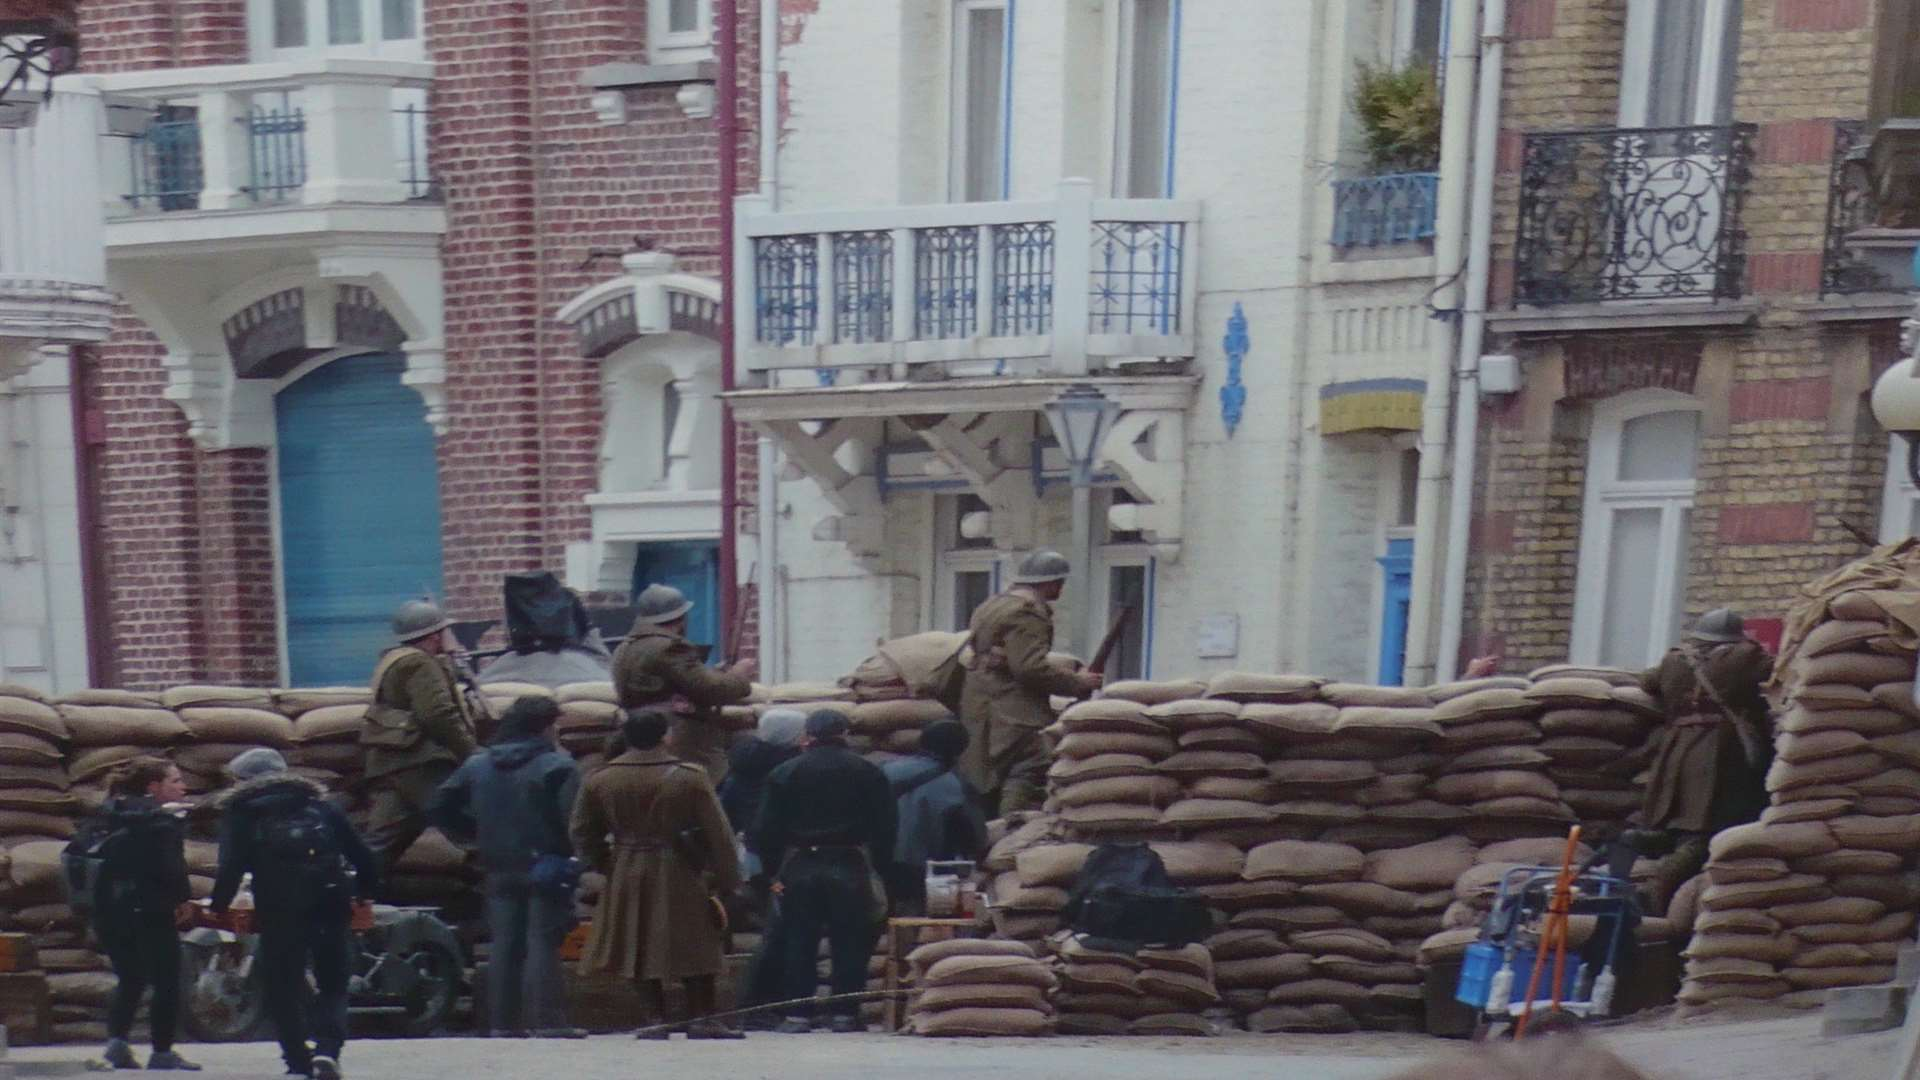 Rue Belle Rade during filming.